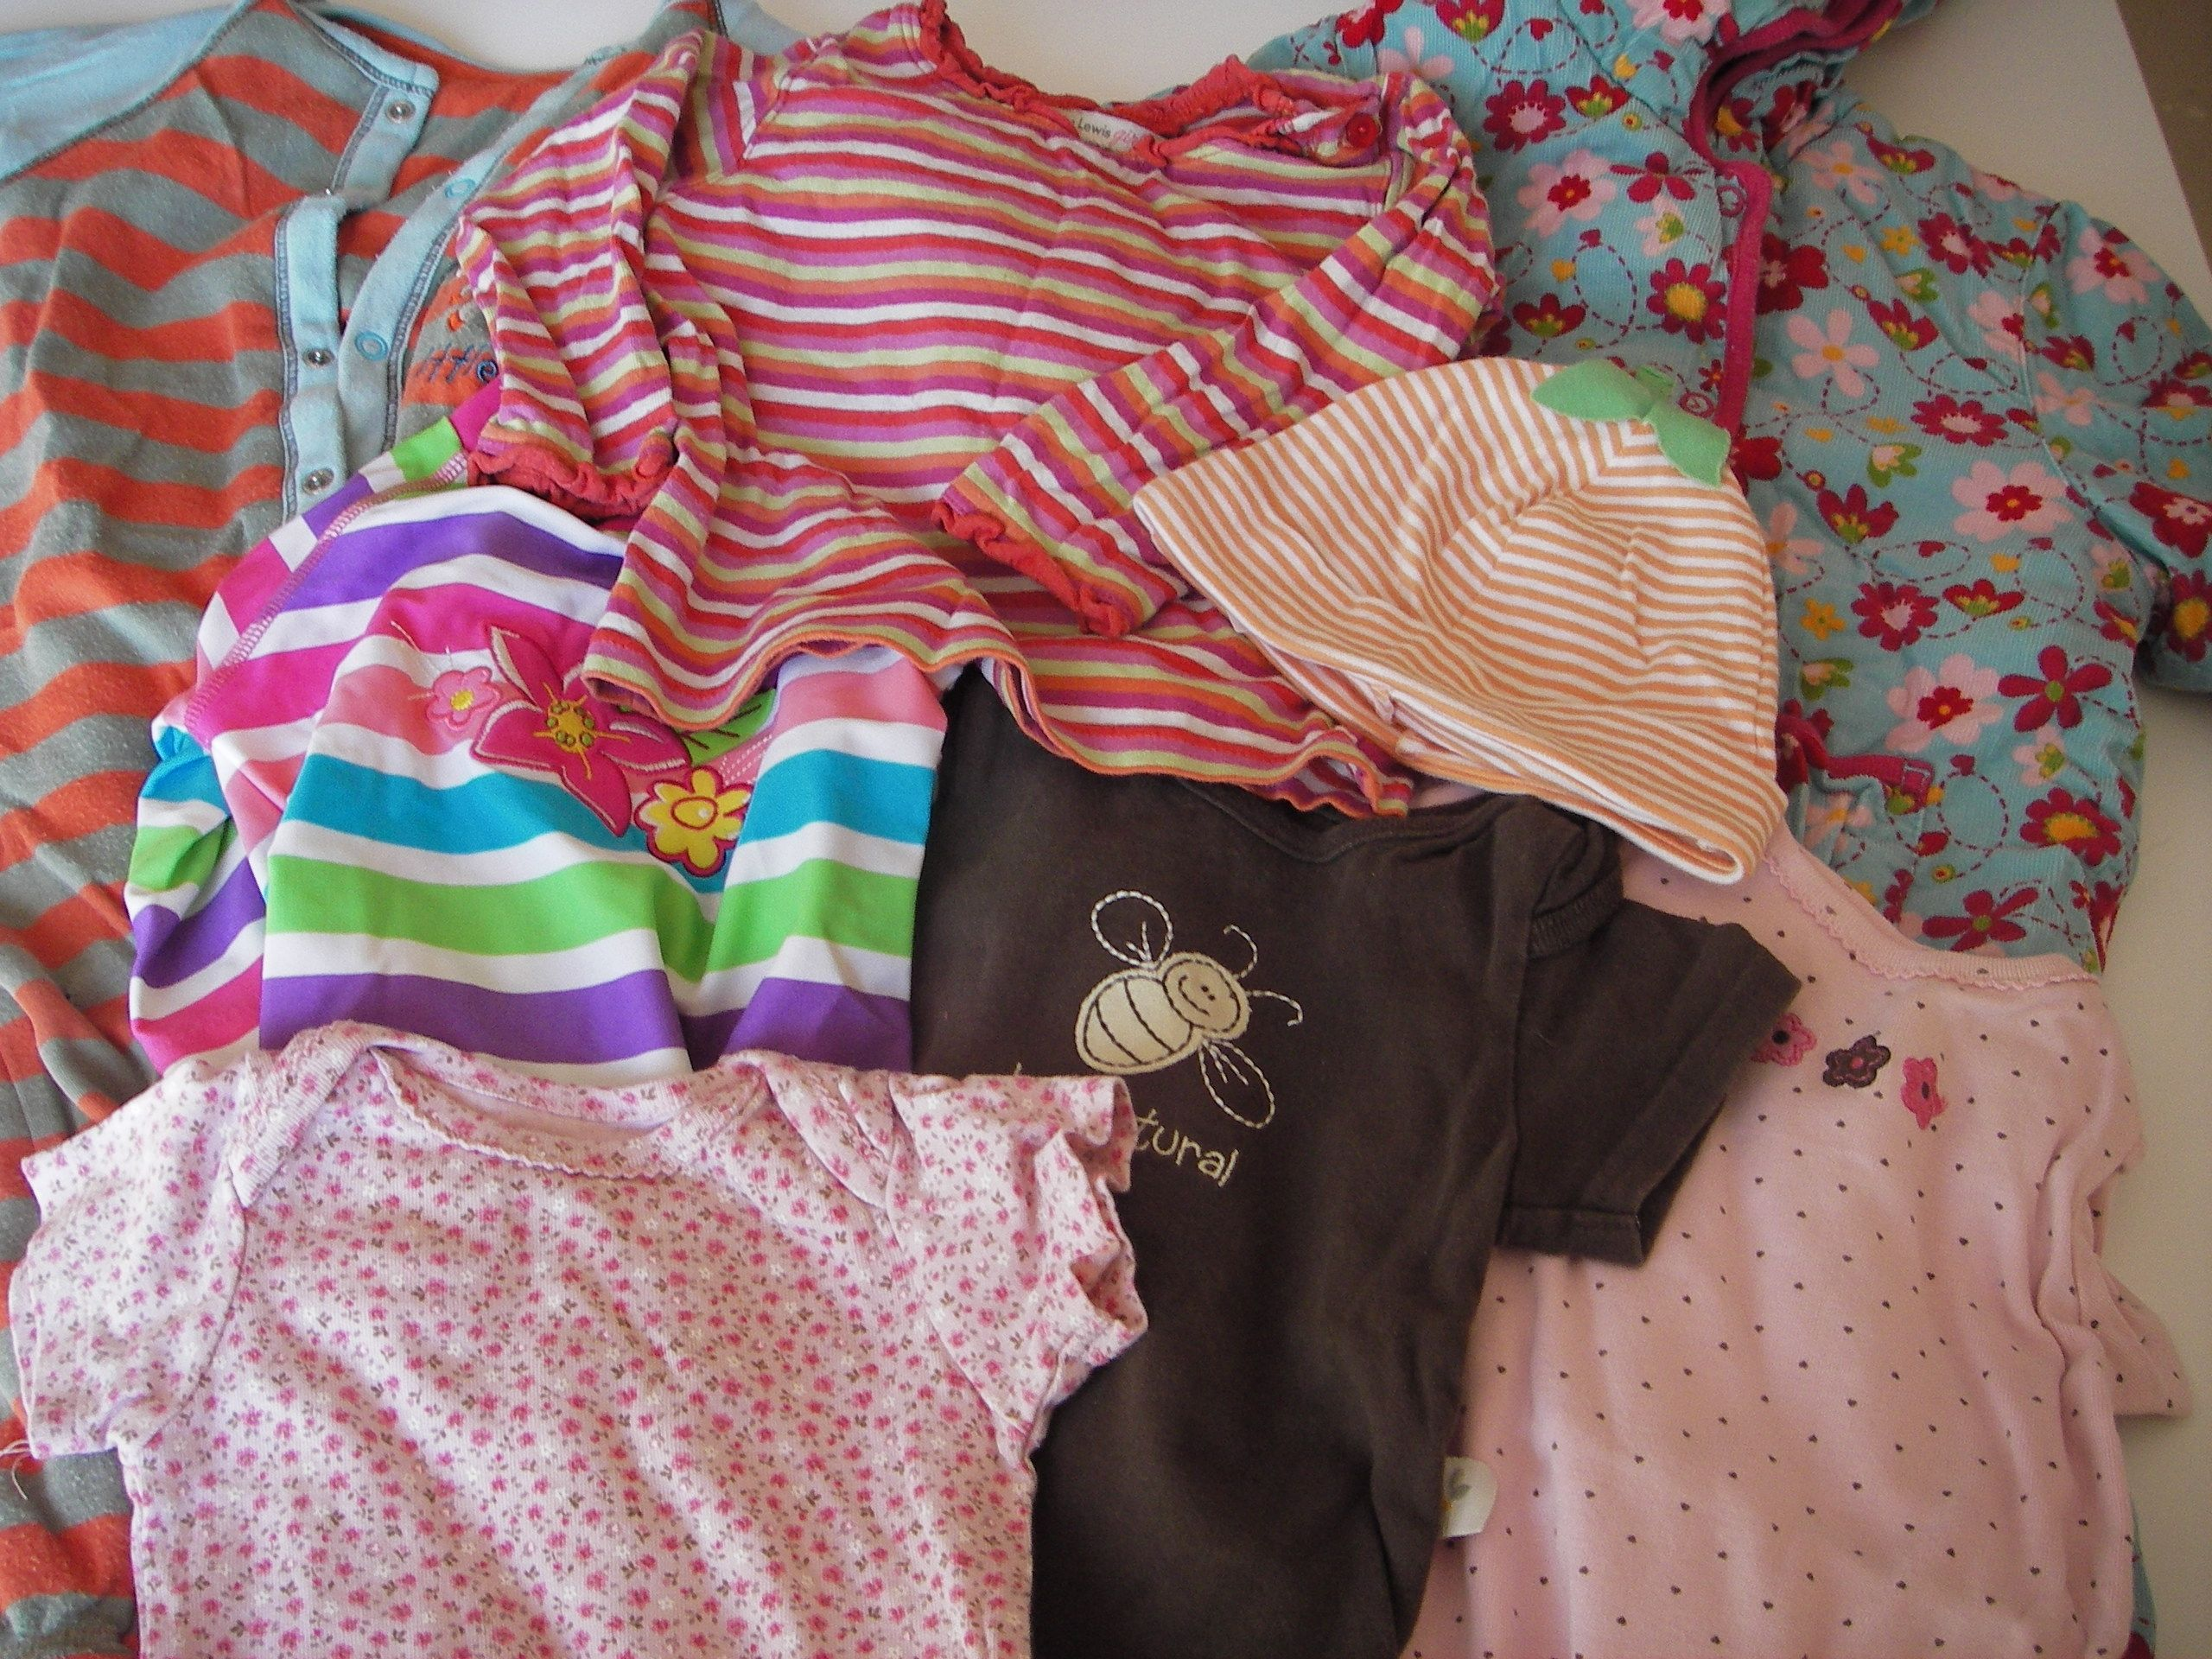 Here's a bundle of Jesse's gorgeous outfits that she's out grown - from quilted all-in-ones to swim suits x